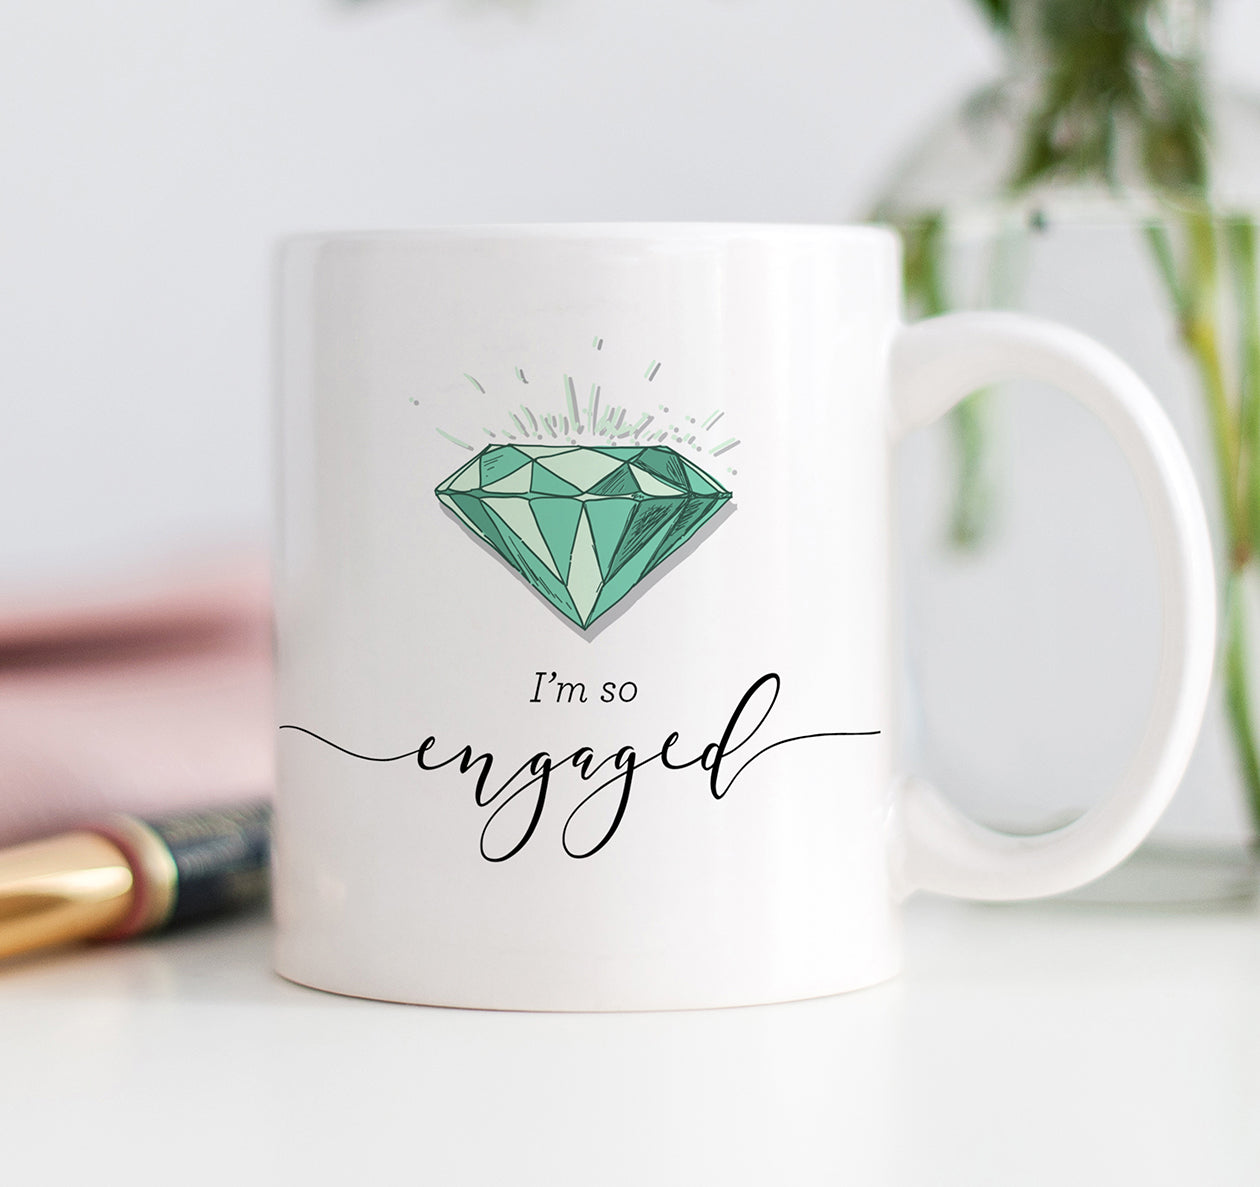 I'm So Engaged Mug